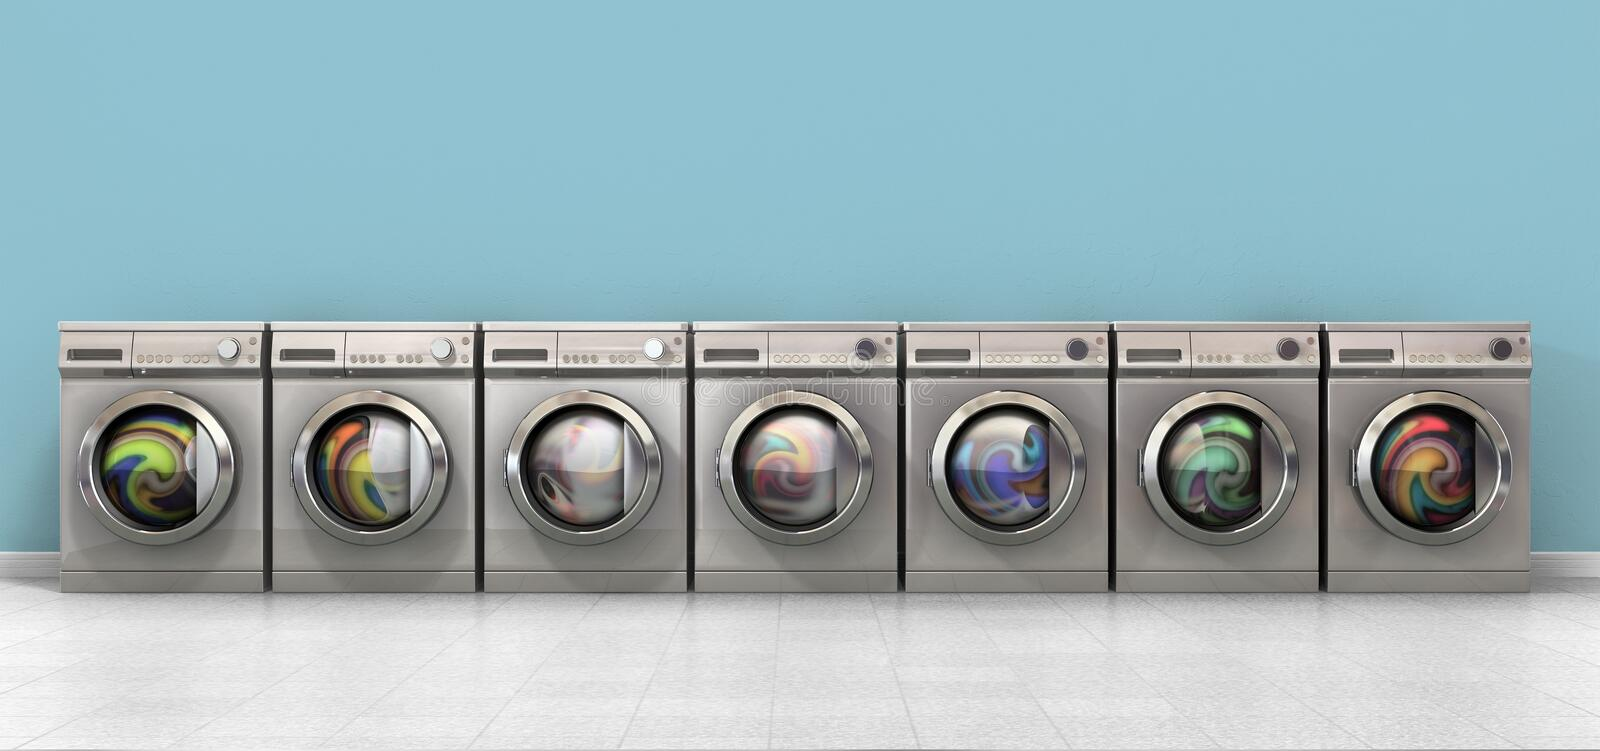 Washing Machine Full Single. A front view of a row of regular brushed metal washing machines filled with clothing in an empty room with a shiny tiled floor and a royalty free illustration